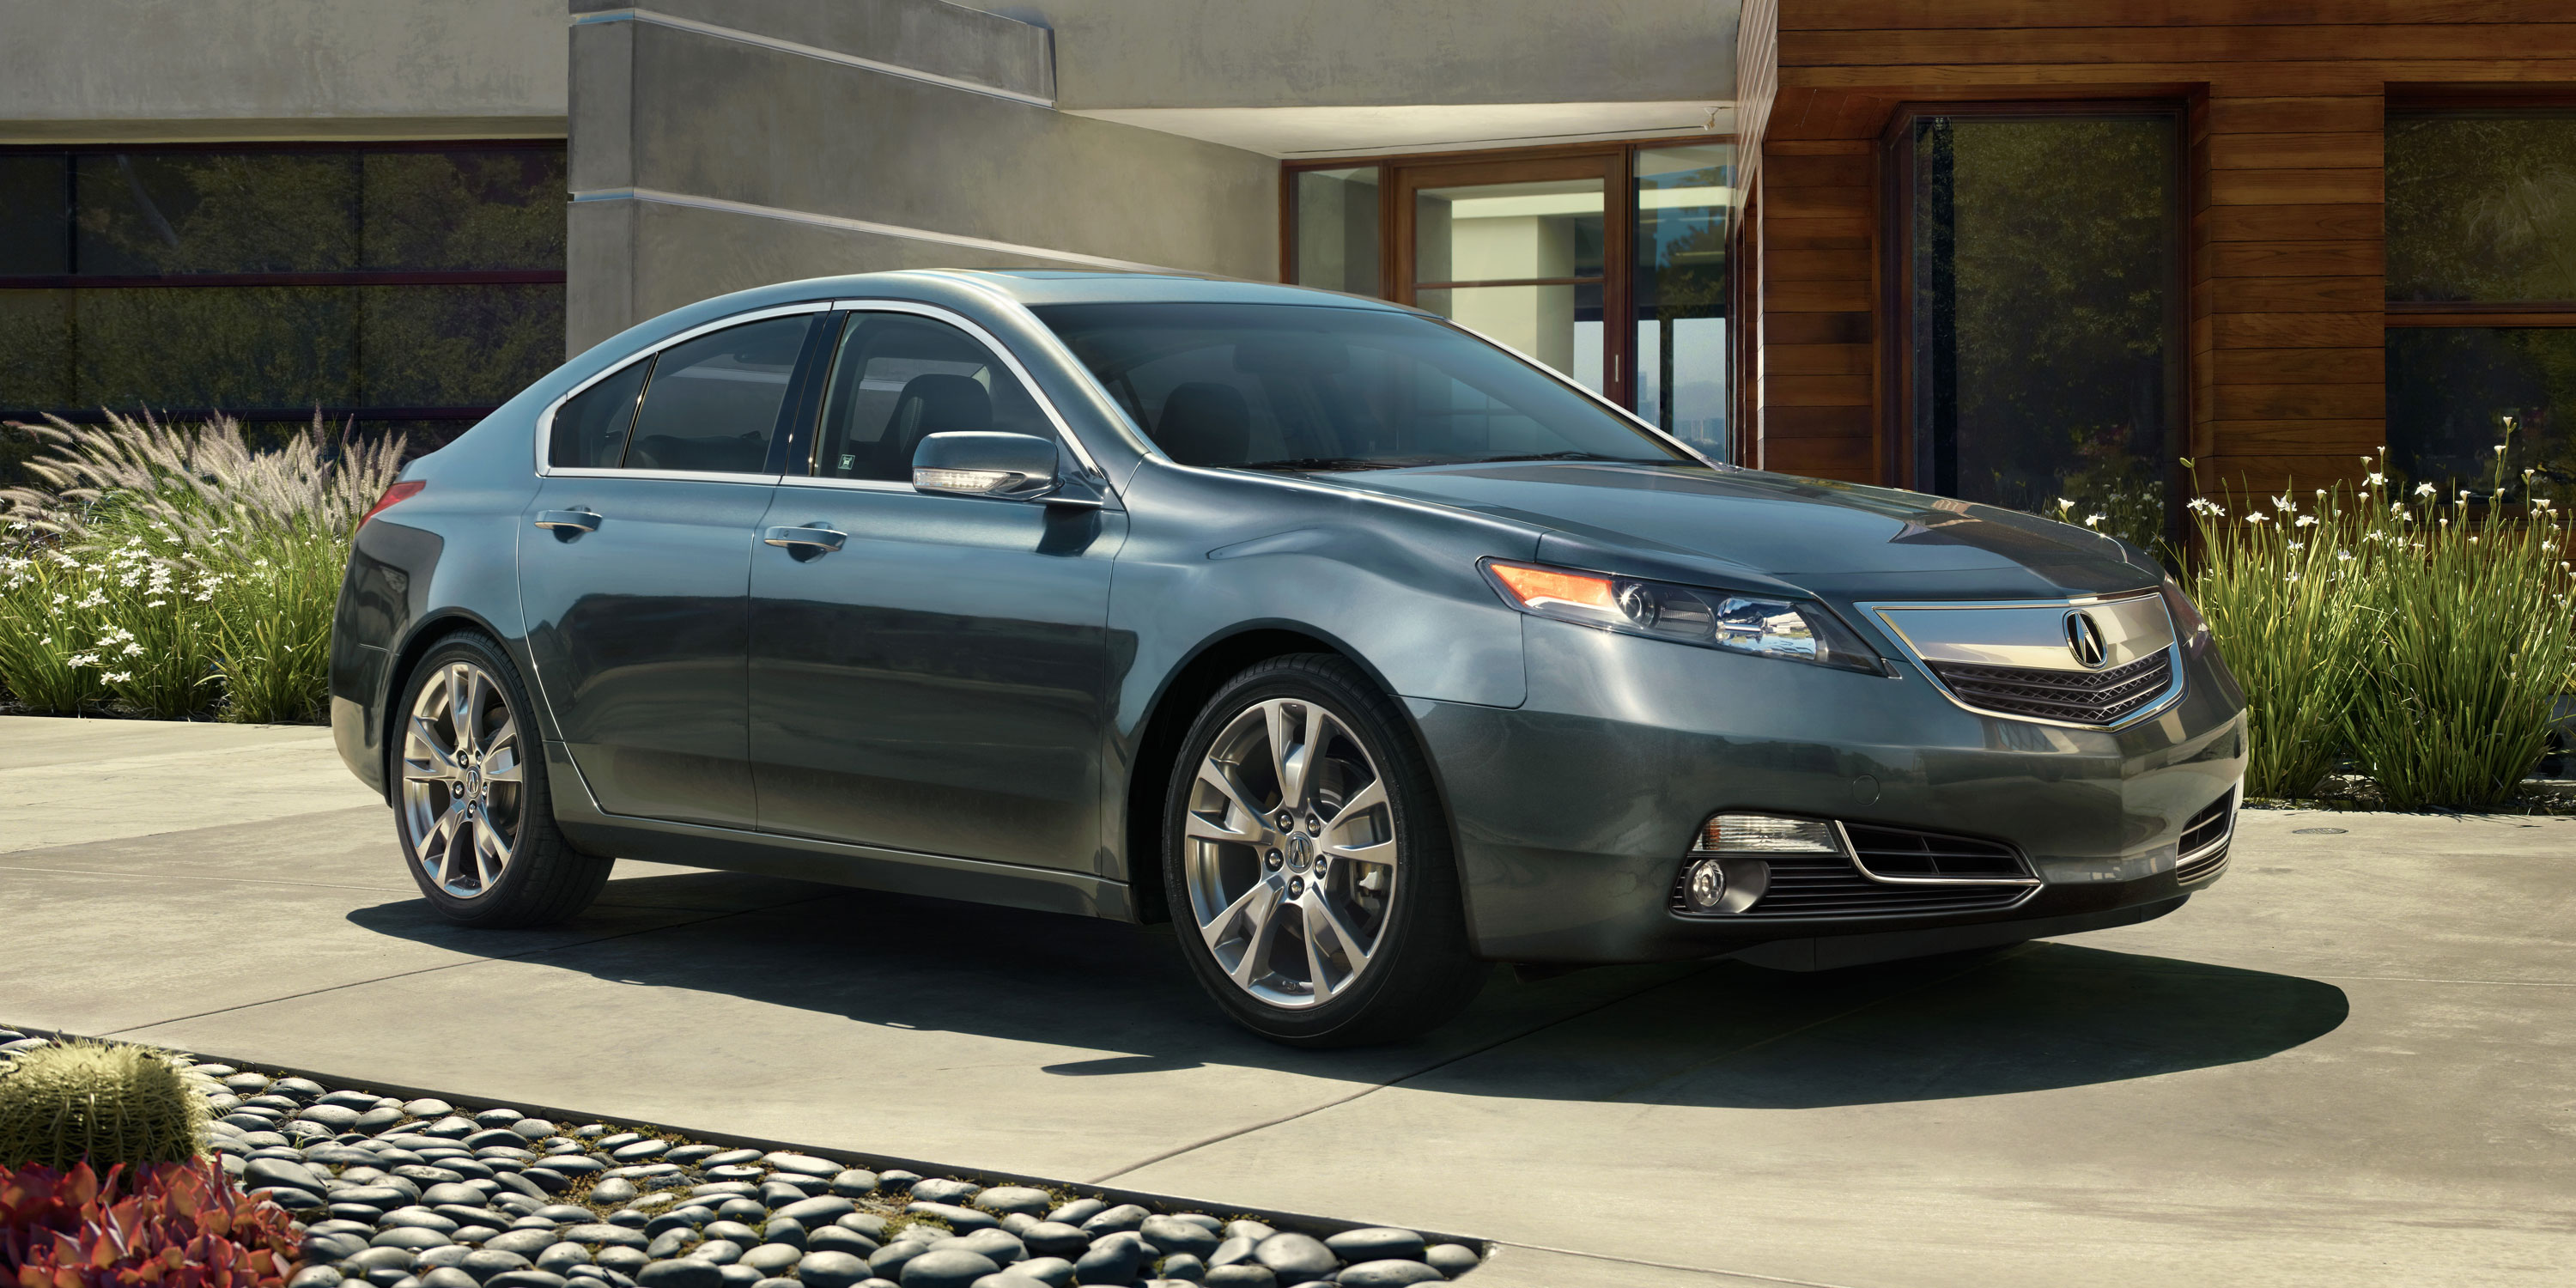 2013 acura tl top speed. Black Bedroom Furniture Sets. Home Design Ideas